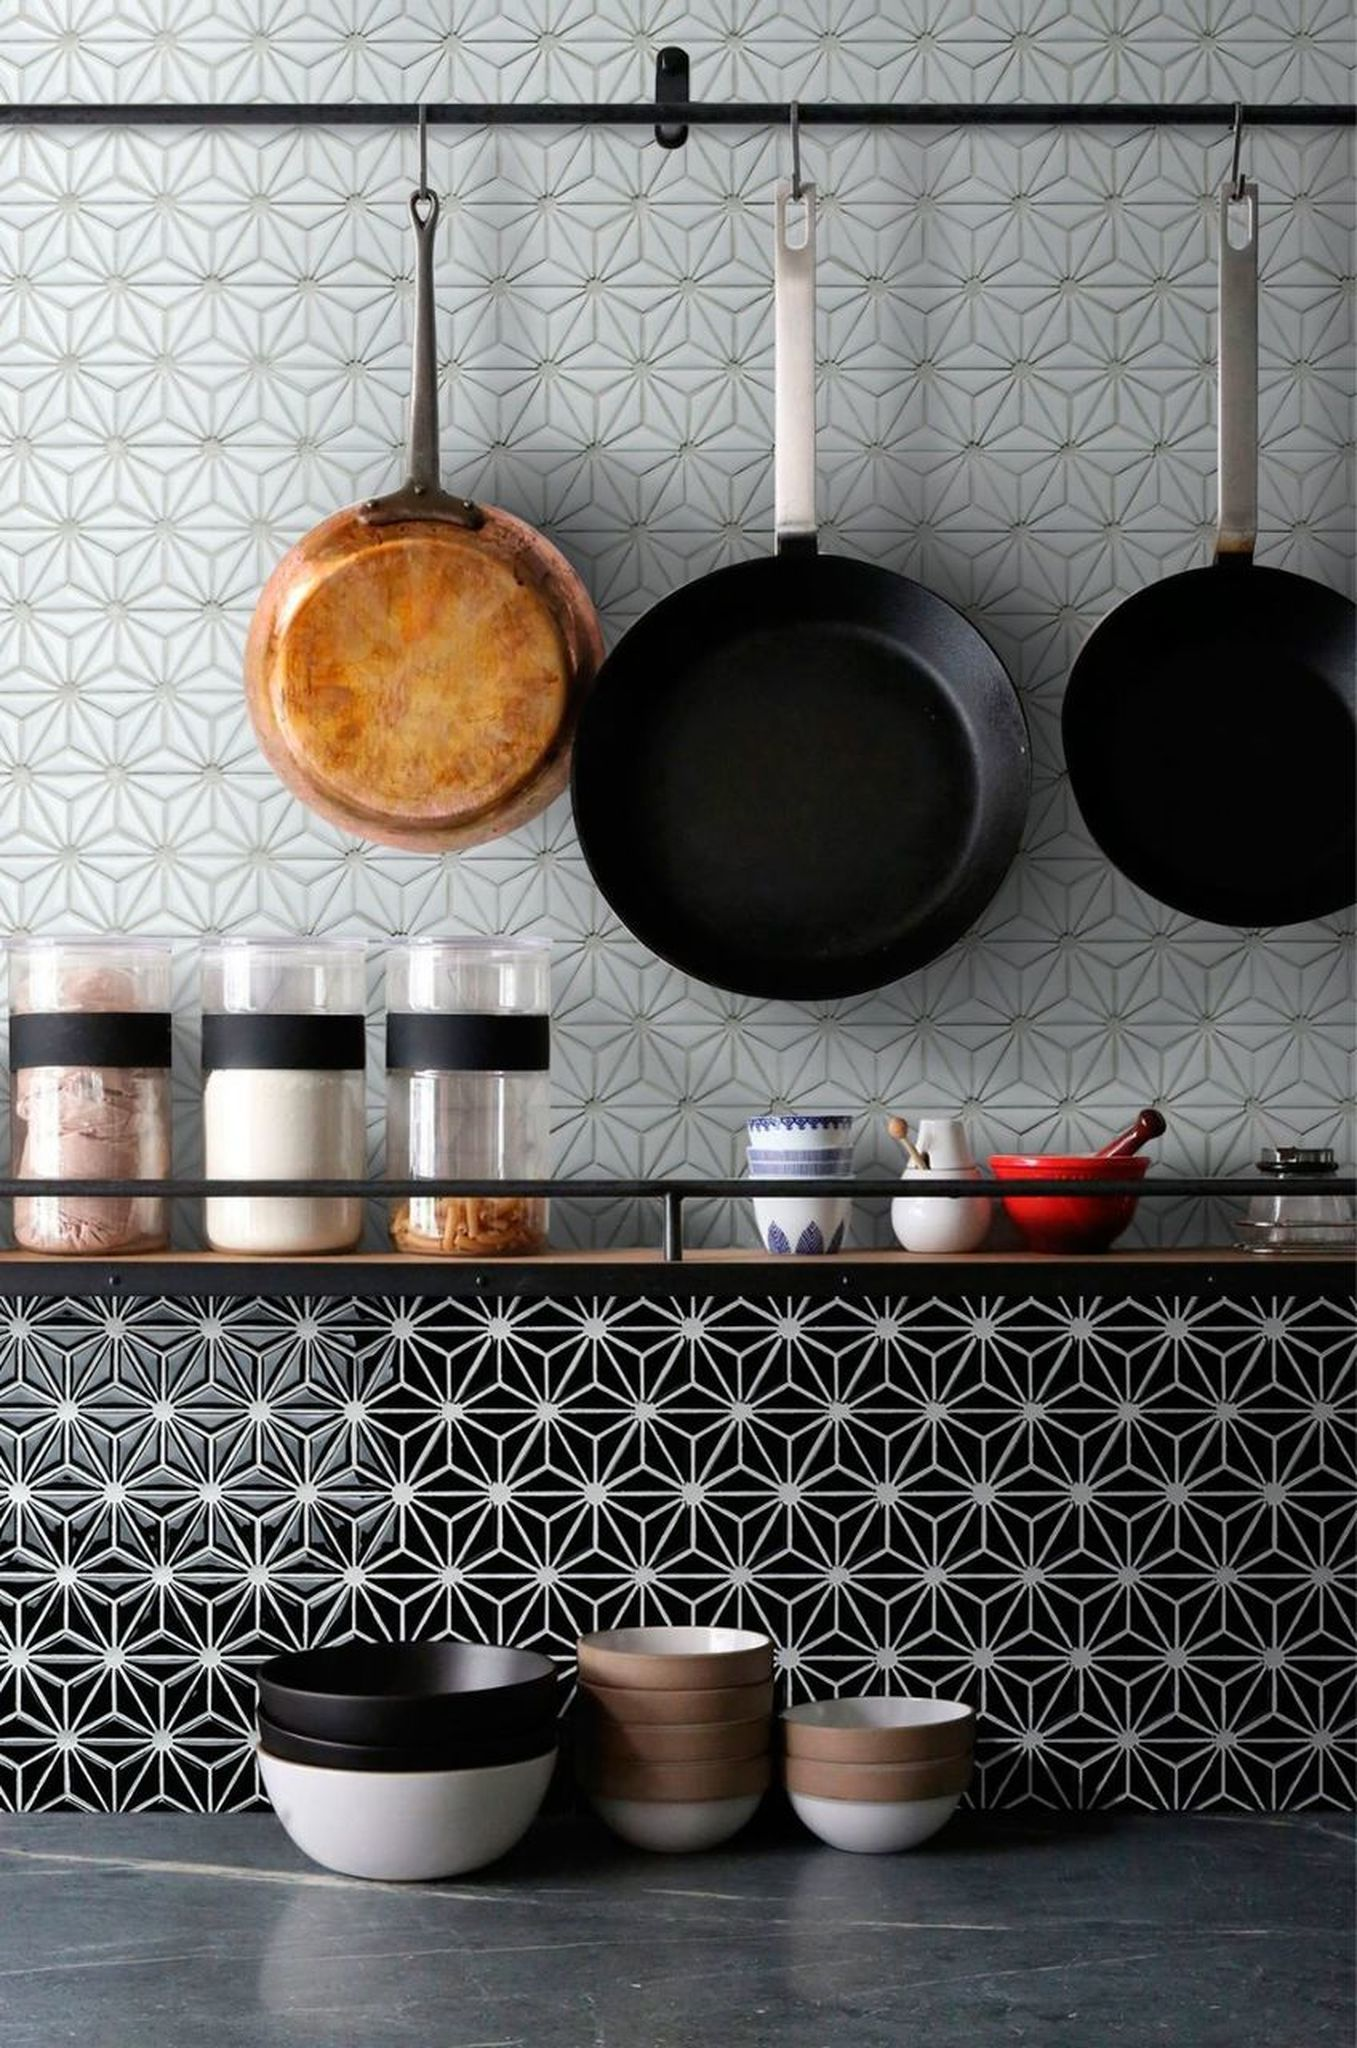 - Ceramic Mosaic Tile Flower Black In 2020 Kitchen Wallpaper